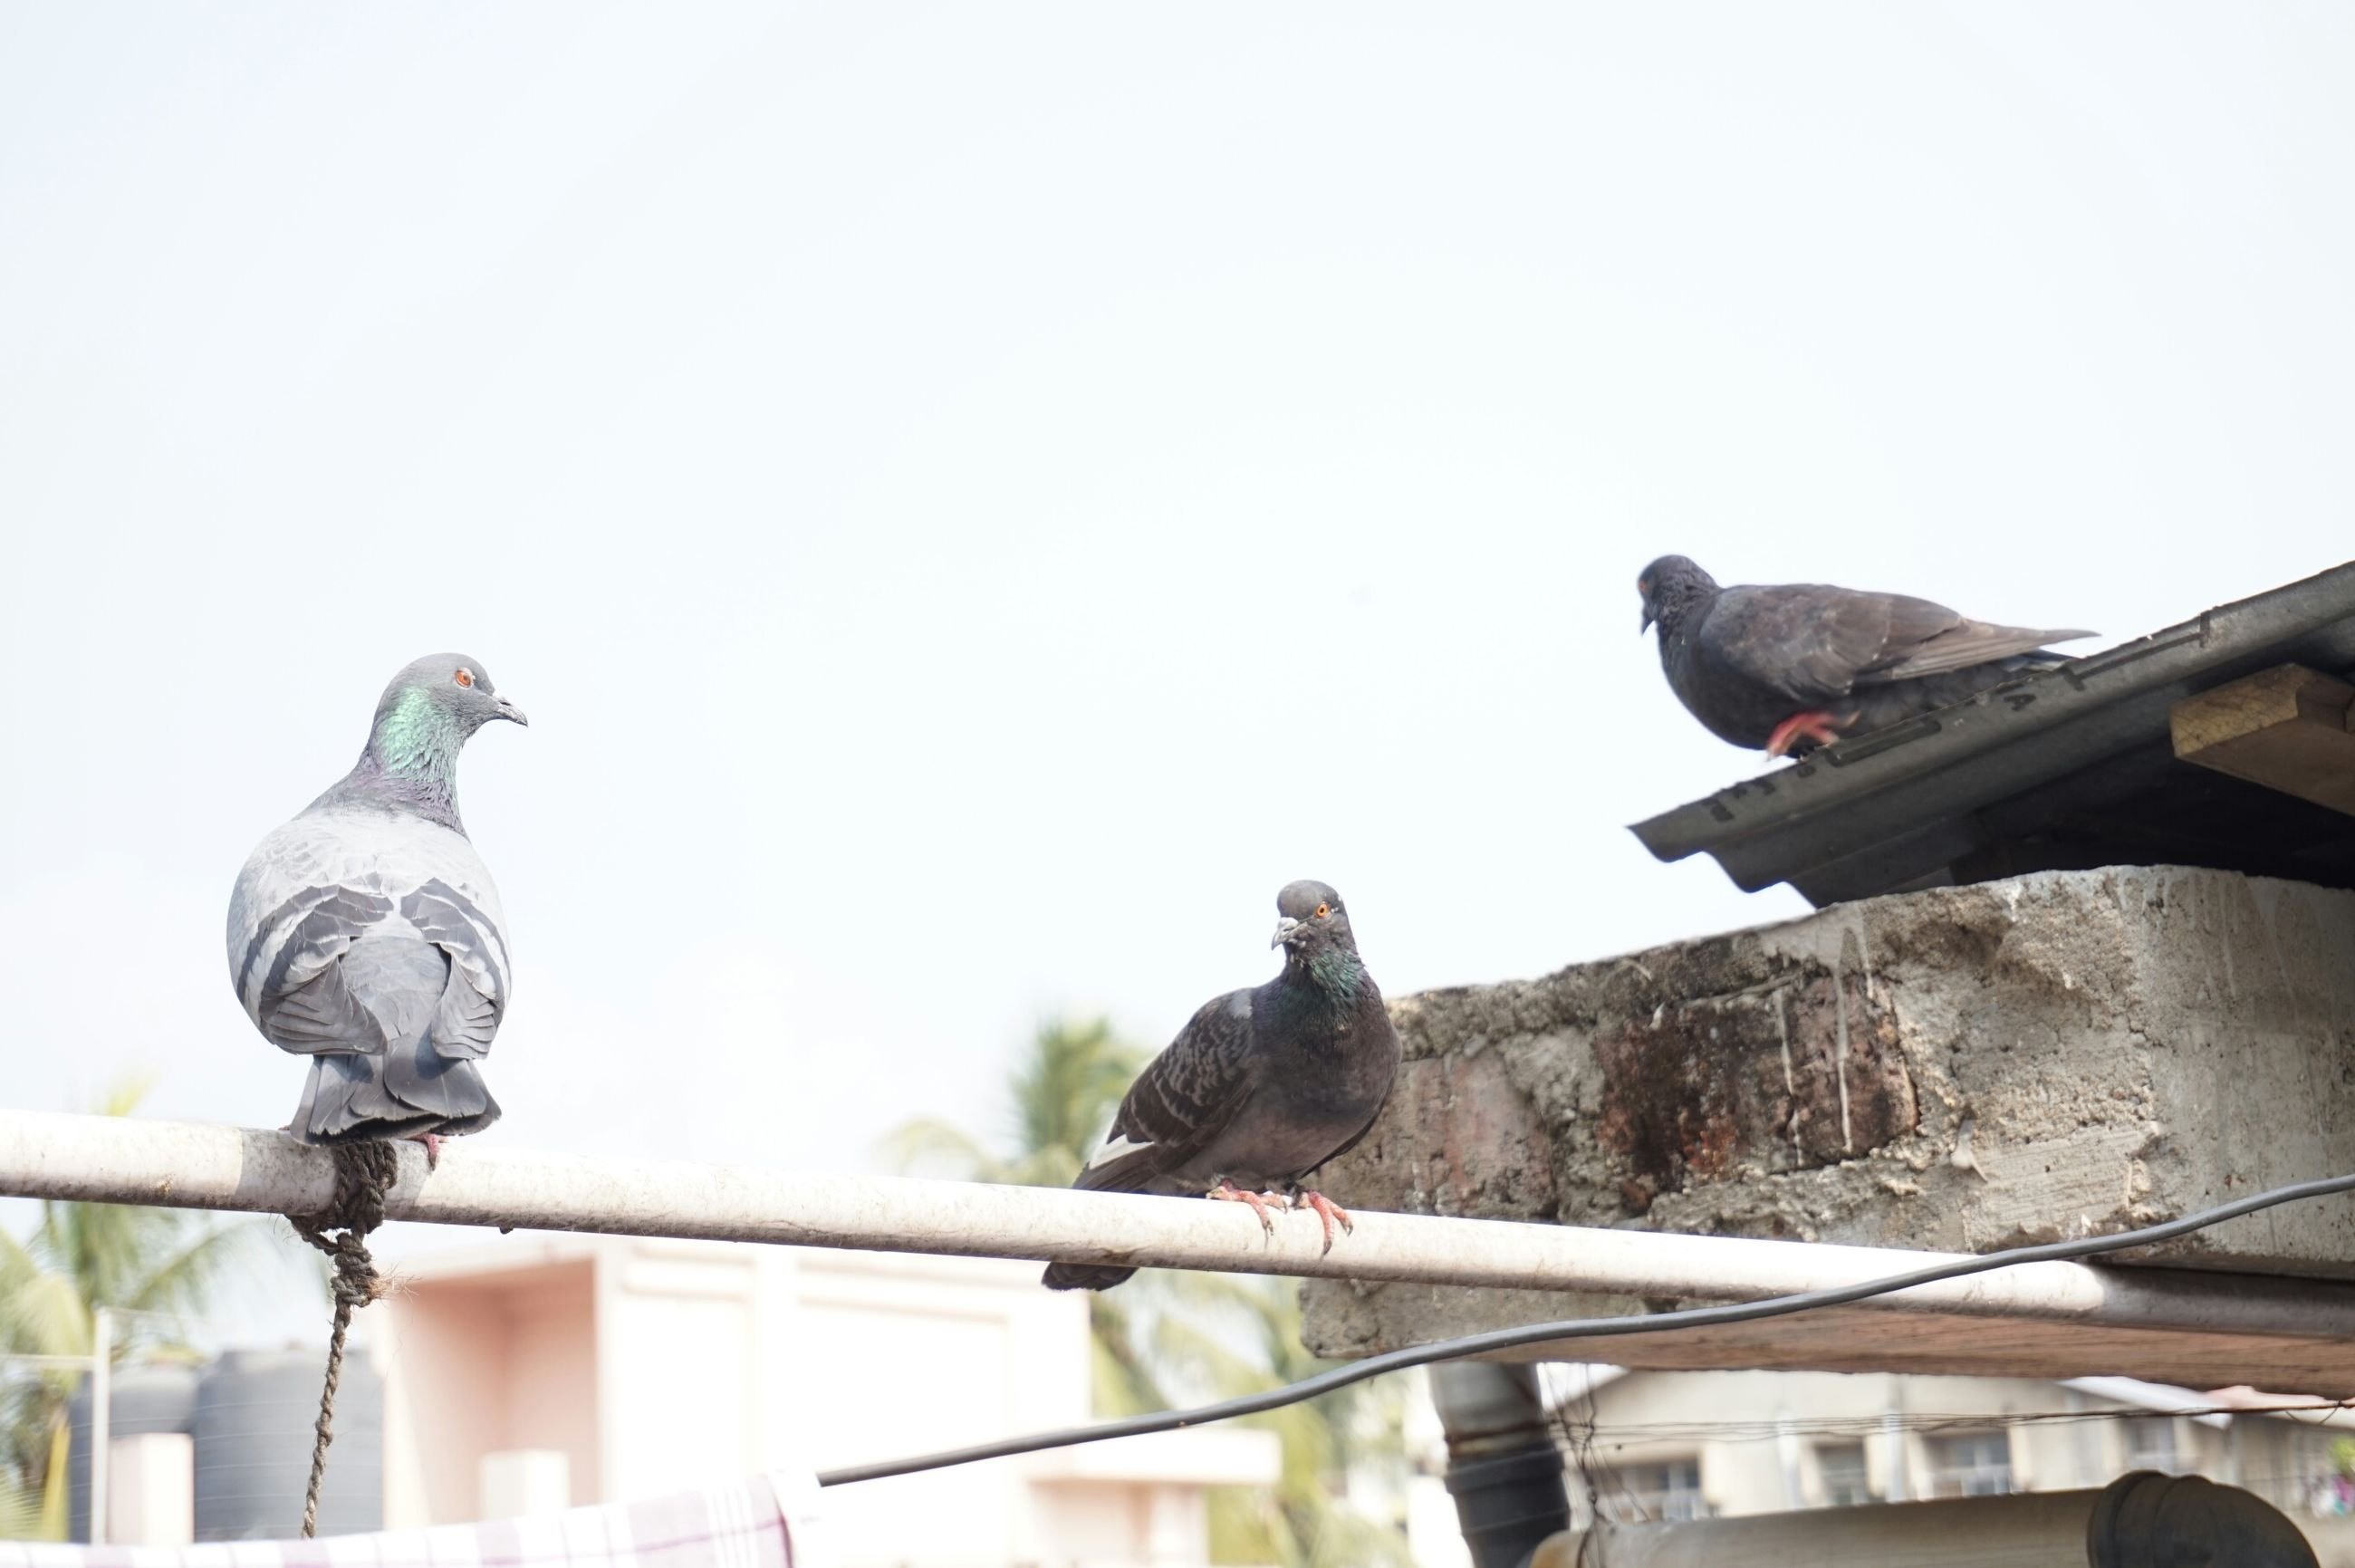 animal themes, bird, one animal, animals in the wild, wildlife, perching, pigeon, clear sky, roof, two animals, low angle view, copy space, outdoors, black color, day, bird of prey, close-up, no people, nature, focus on foreground